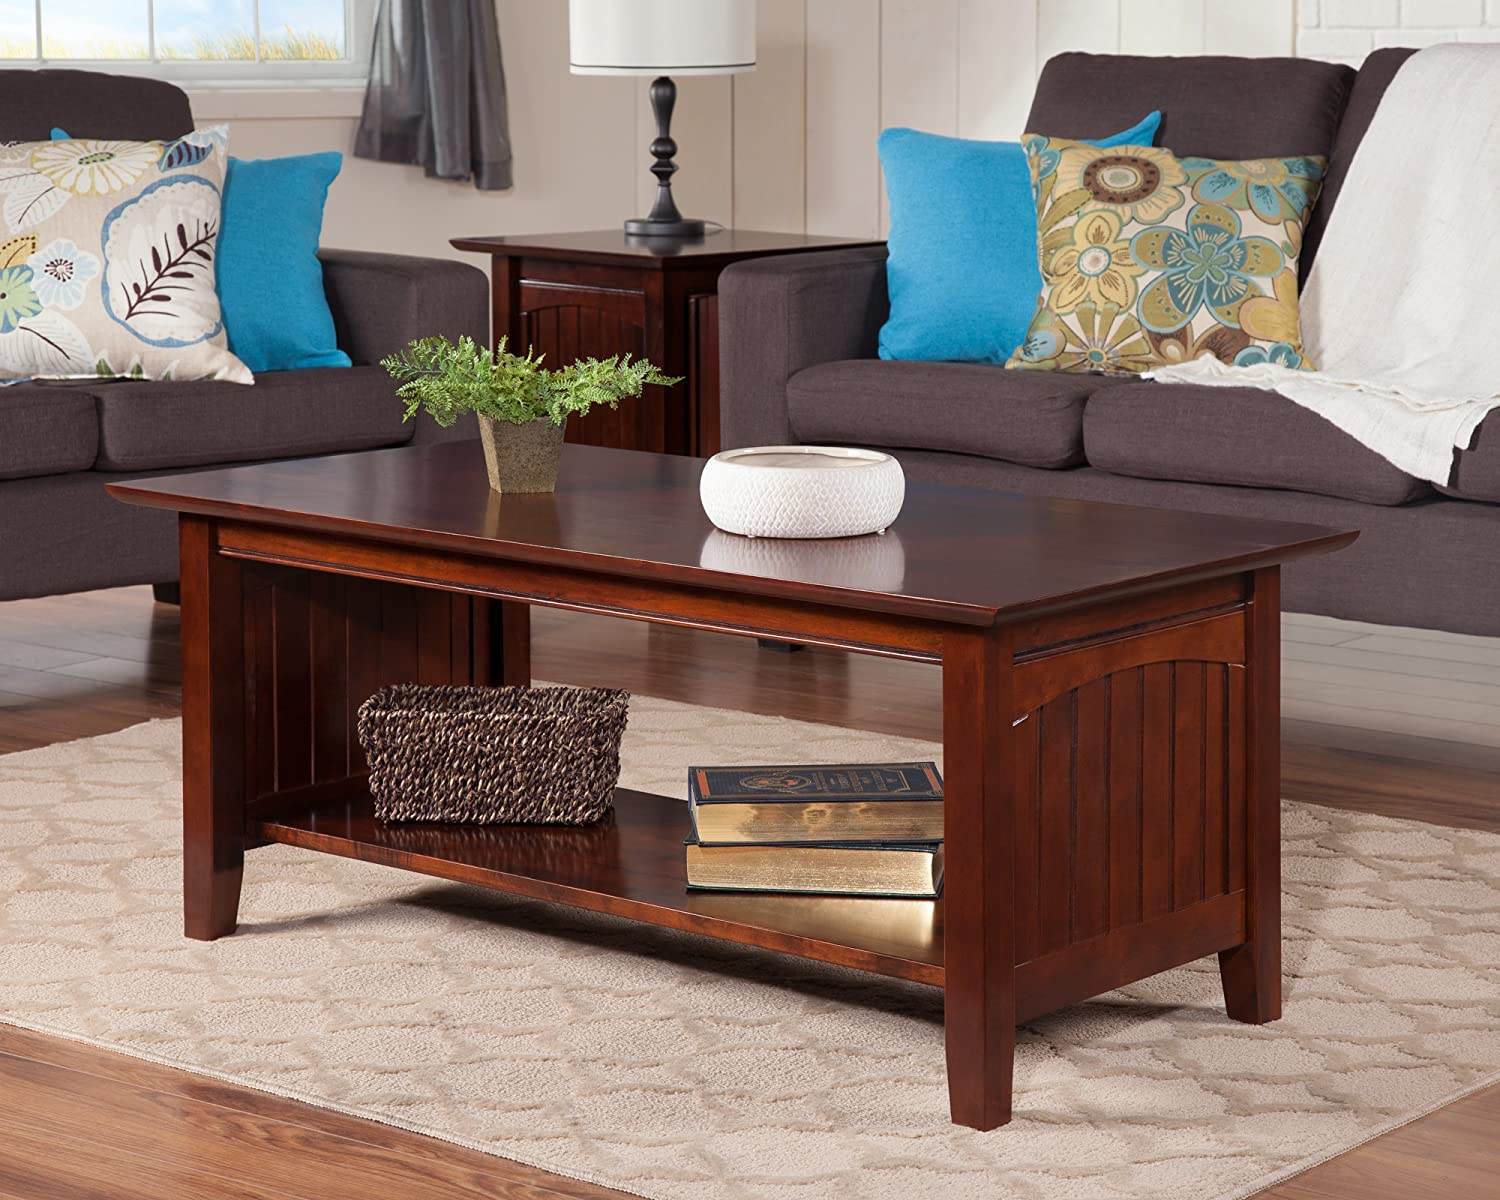 Amazon com atlantic furniture ah15304 nantucket coffee table rubber wood walnut kitchen dining